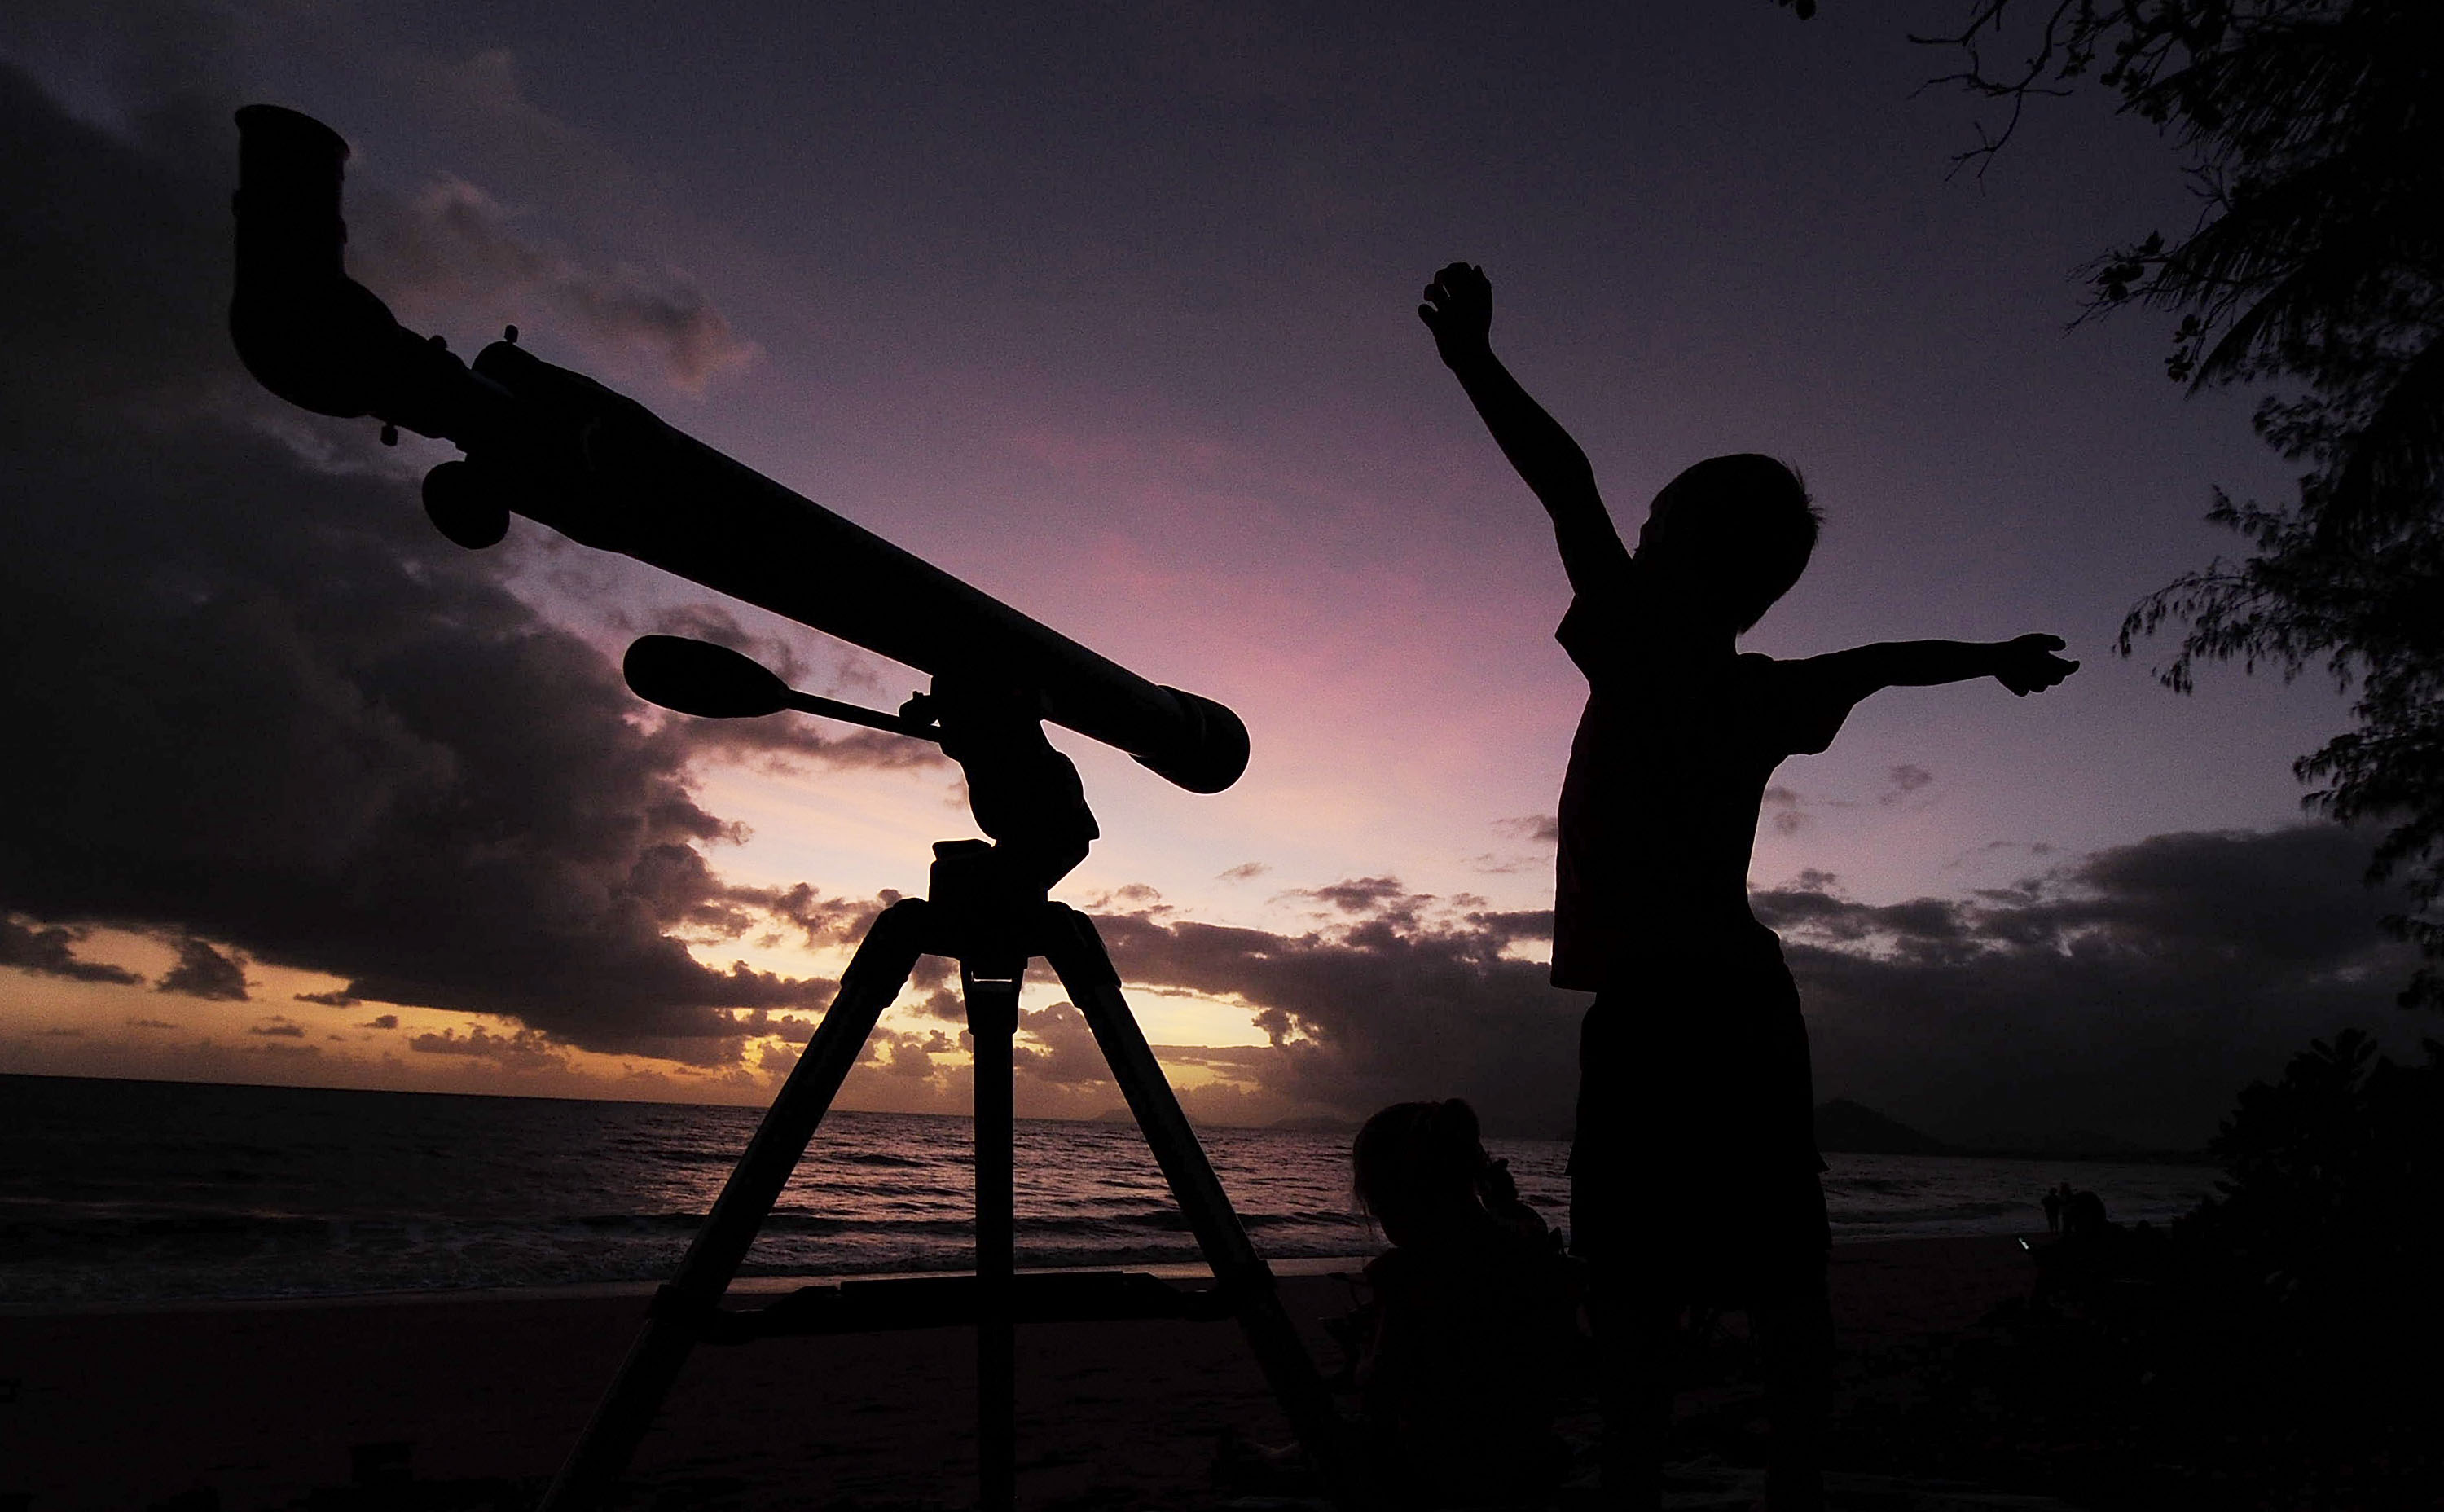 A young boy gets ready to view the solar eclipse  with his telescope on November 14, 2012 in Palm Cove, Australia. Thousands of eclipse-watchers have gathered in part of North Queensland to enjoy the solar eclipse, the first in Australia in a decade.